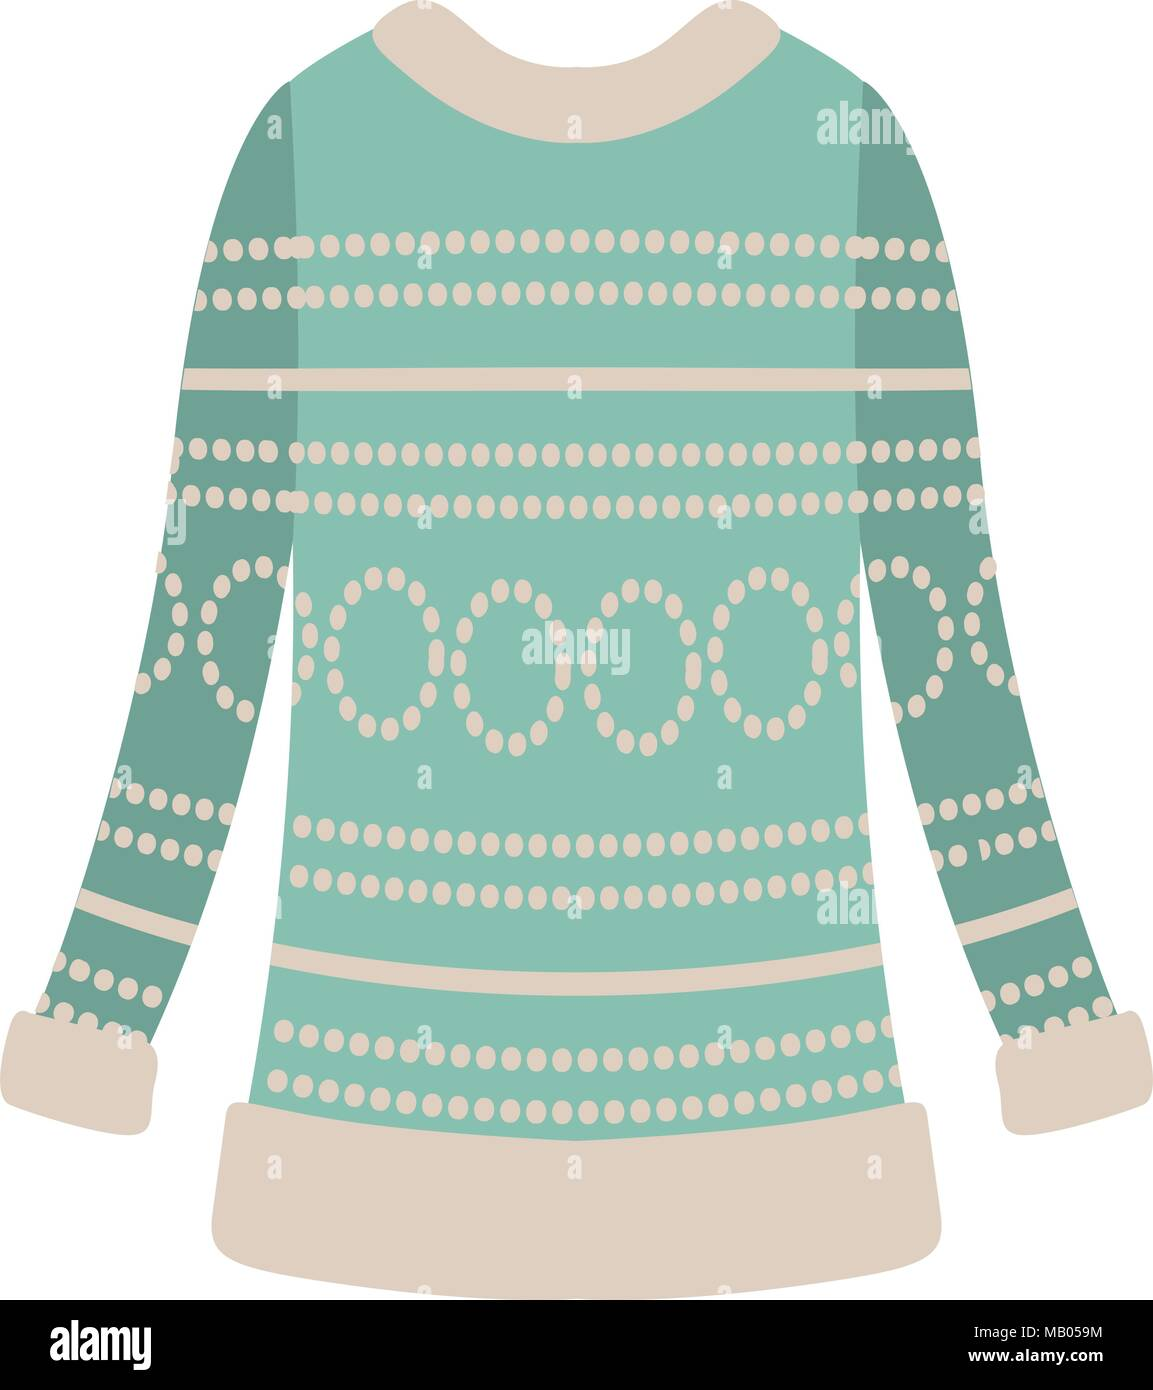 Wool sweater clothes icon - Stock Vector